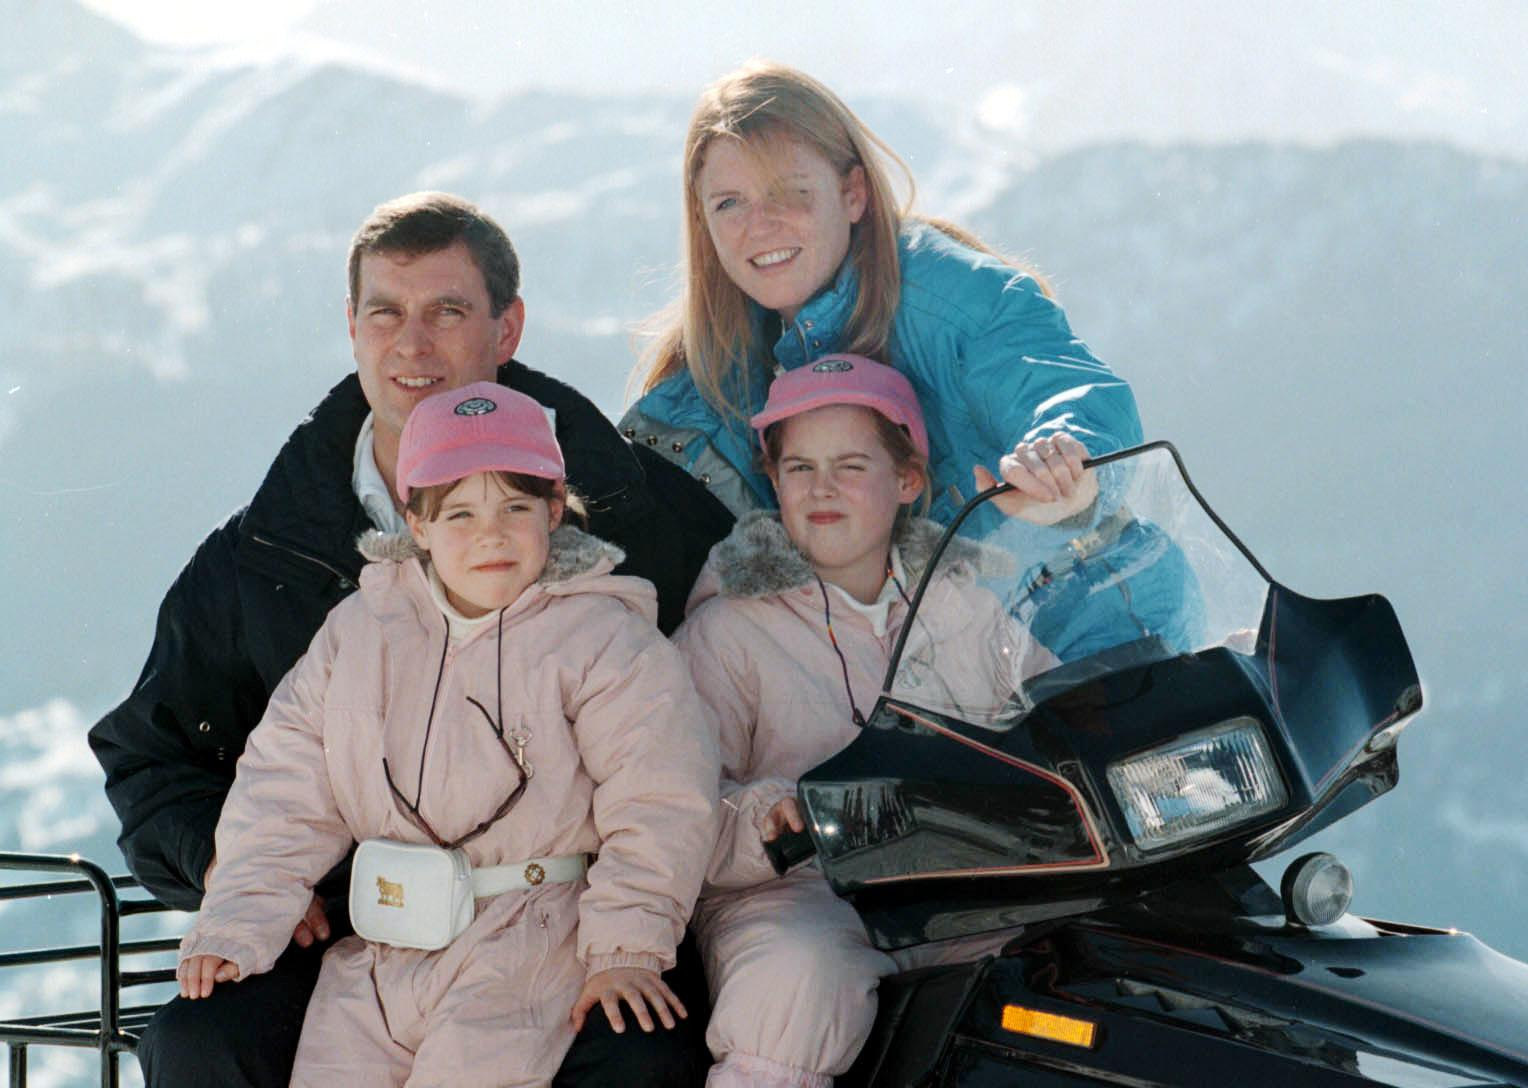 The Duchess of York with former husband the Duke of York,   during a photocall with their daughters Princesses Beatrice (right), nine, and seven-year-old Eugenie in Verbier, Switzerland today (Thursday).  PA PIC NEIL MUNNS.  See PA Story ROYAL Duchess.  07/03/98: The Princesses could be stripped of their HRH titles in a round of reforms to further modernise the monarchy, announced today (Saturday).  The proposals include restricting the style His or Her Royal Highness to senior royals; confirming that bowing and curtseying to royals is not compulsory; and finally closing the door on palace grace-and-favour accommodation. See PA Story ROYAL Reform.